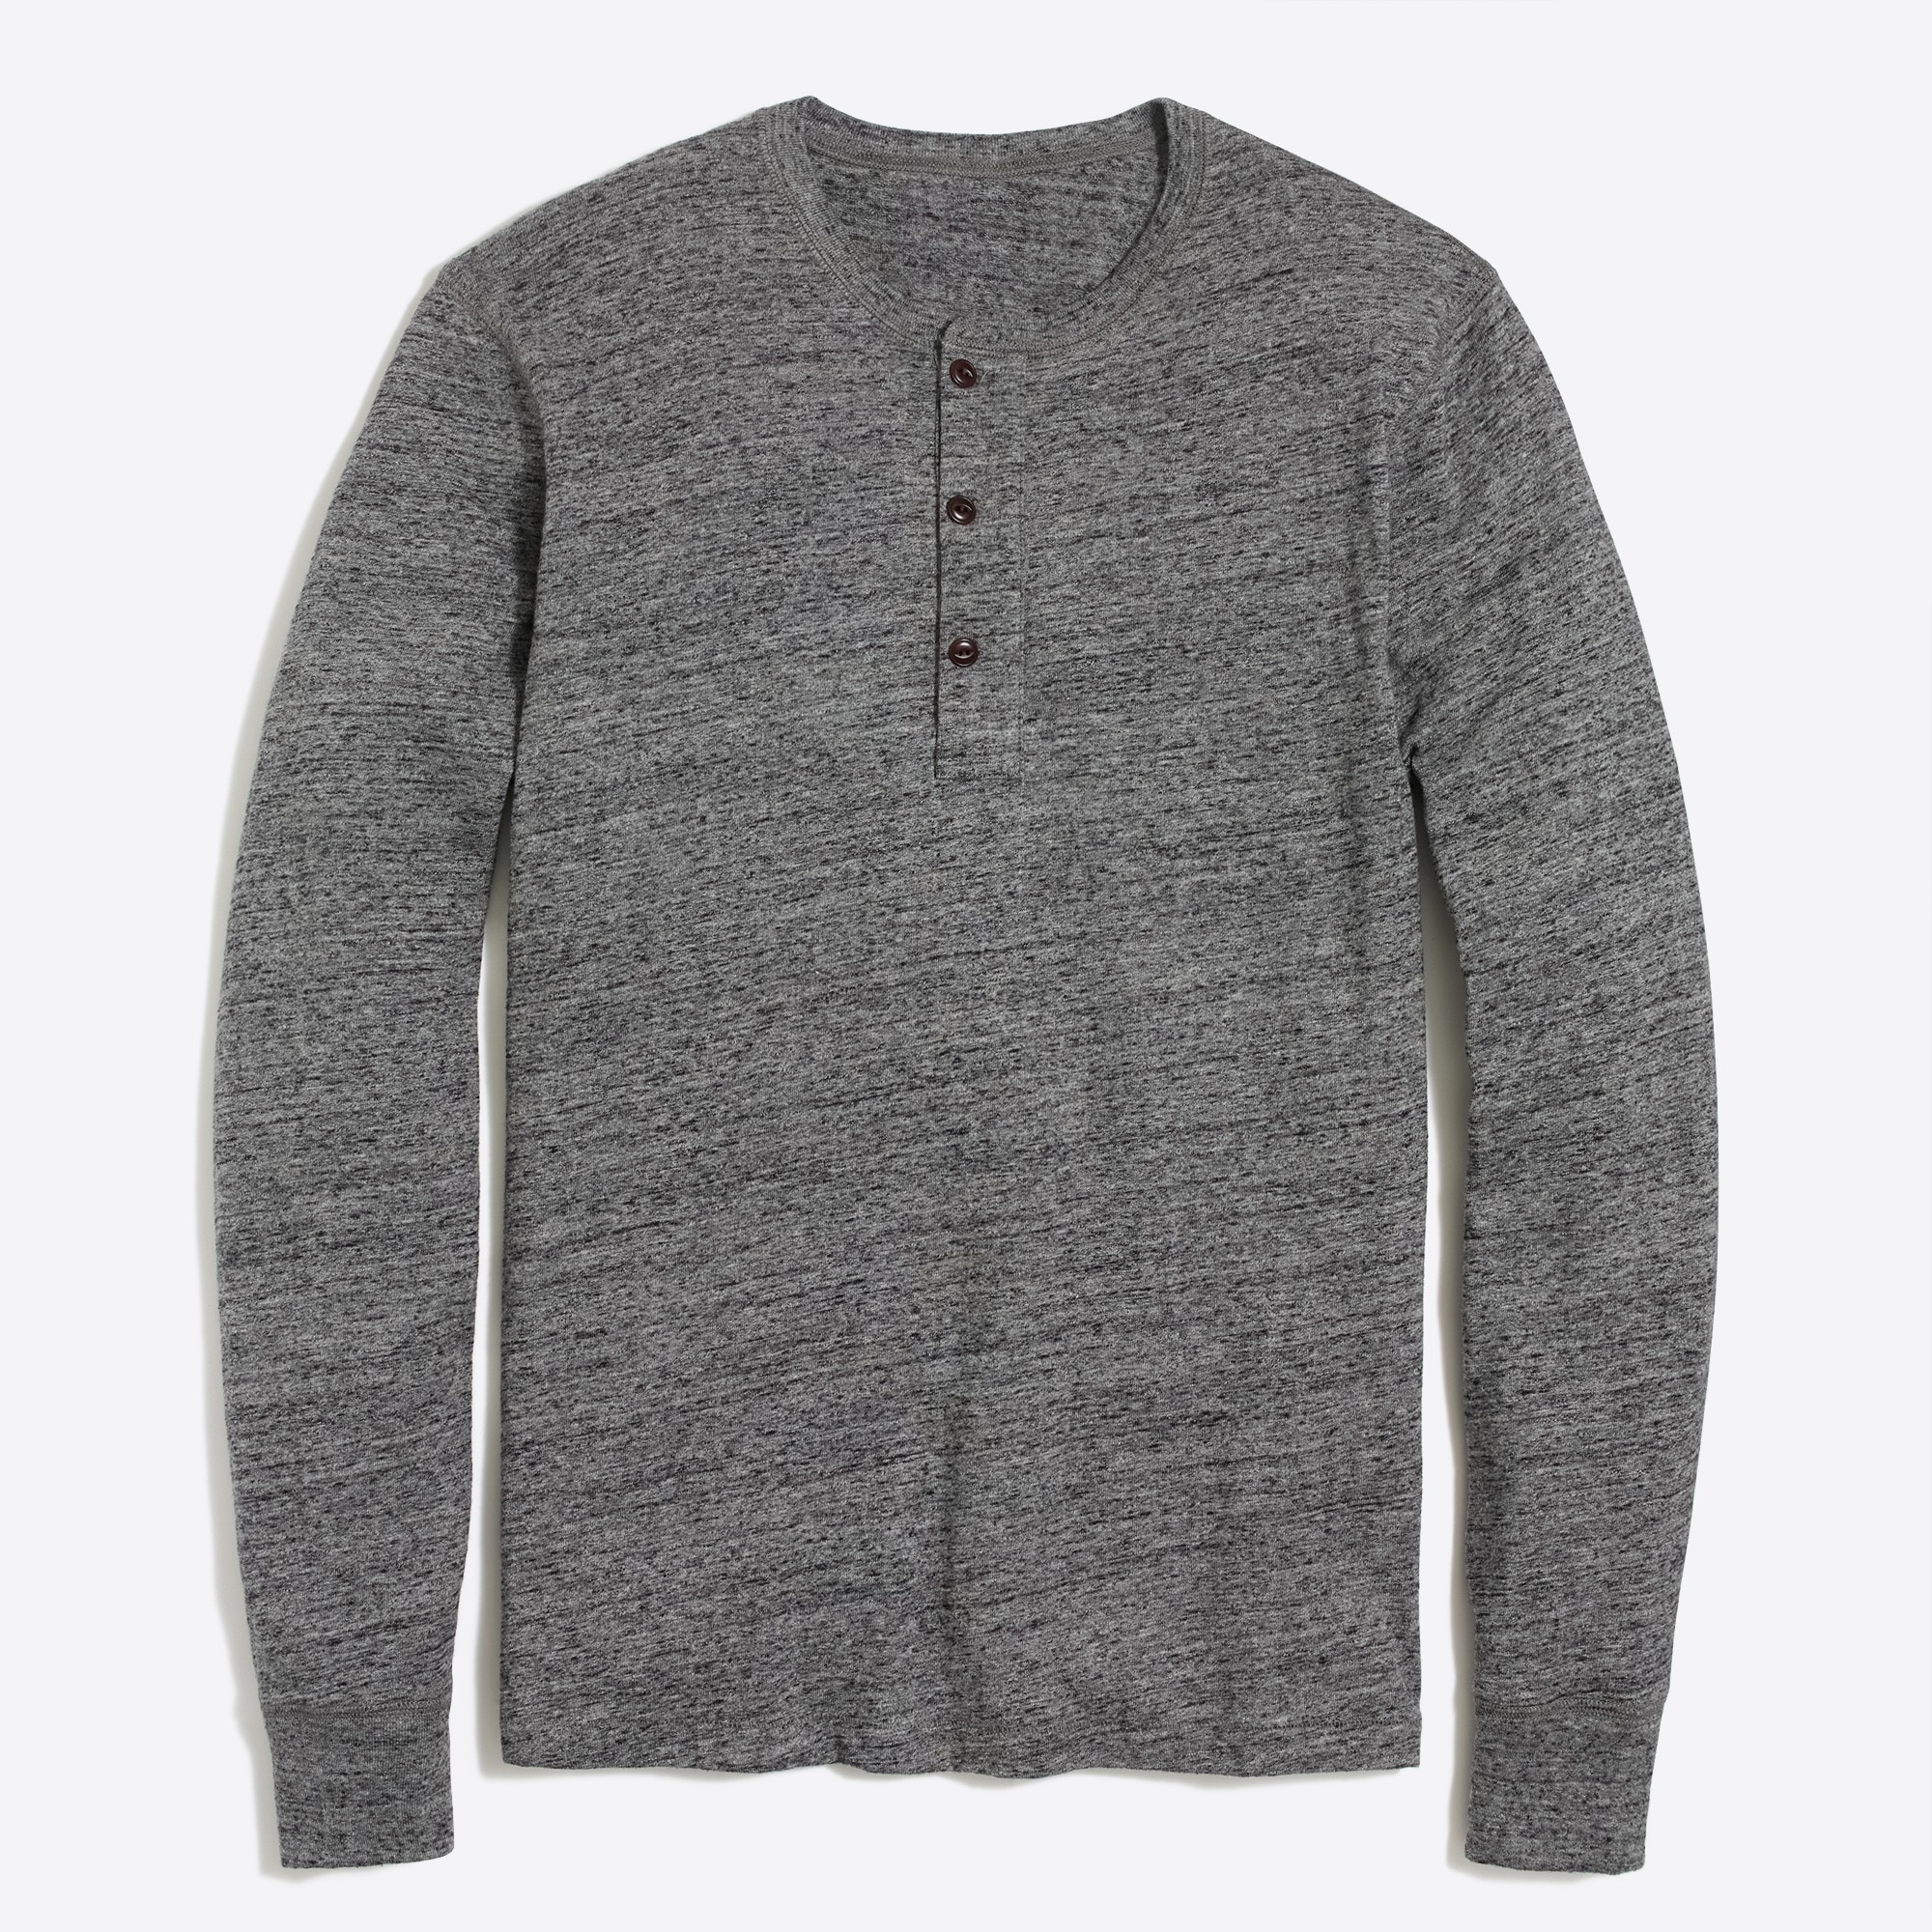 long-sleeve slub cotton heather henley : factorymen henleys